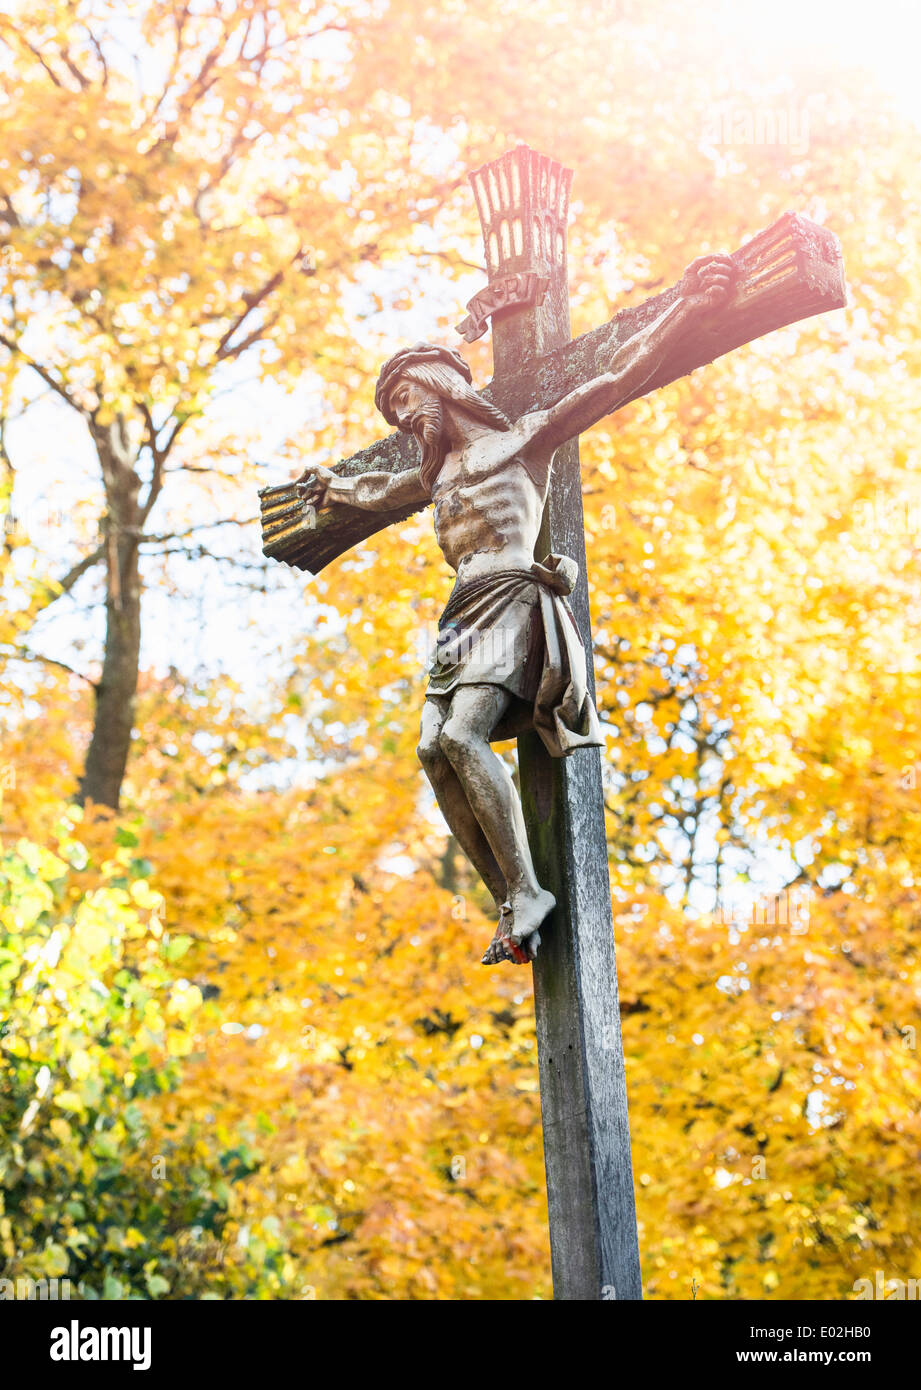 jesus christ on the cross with fall trees in the background